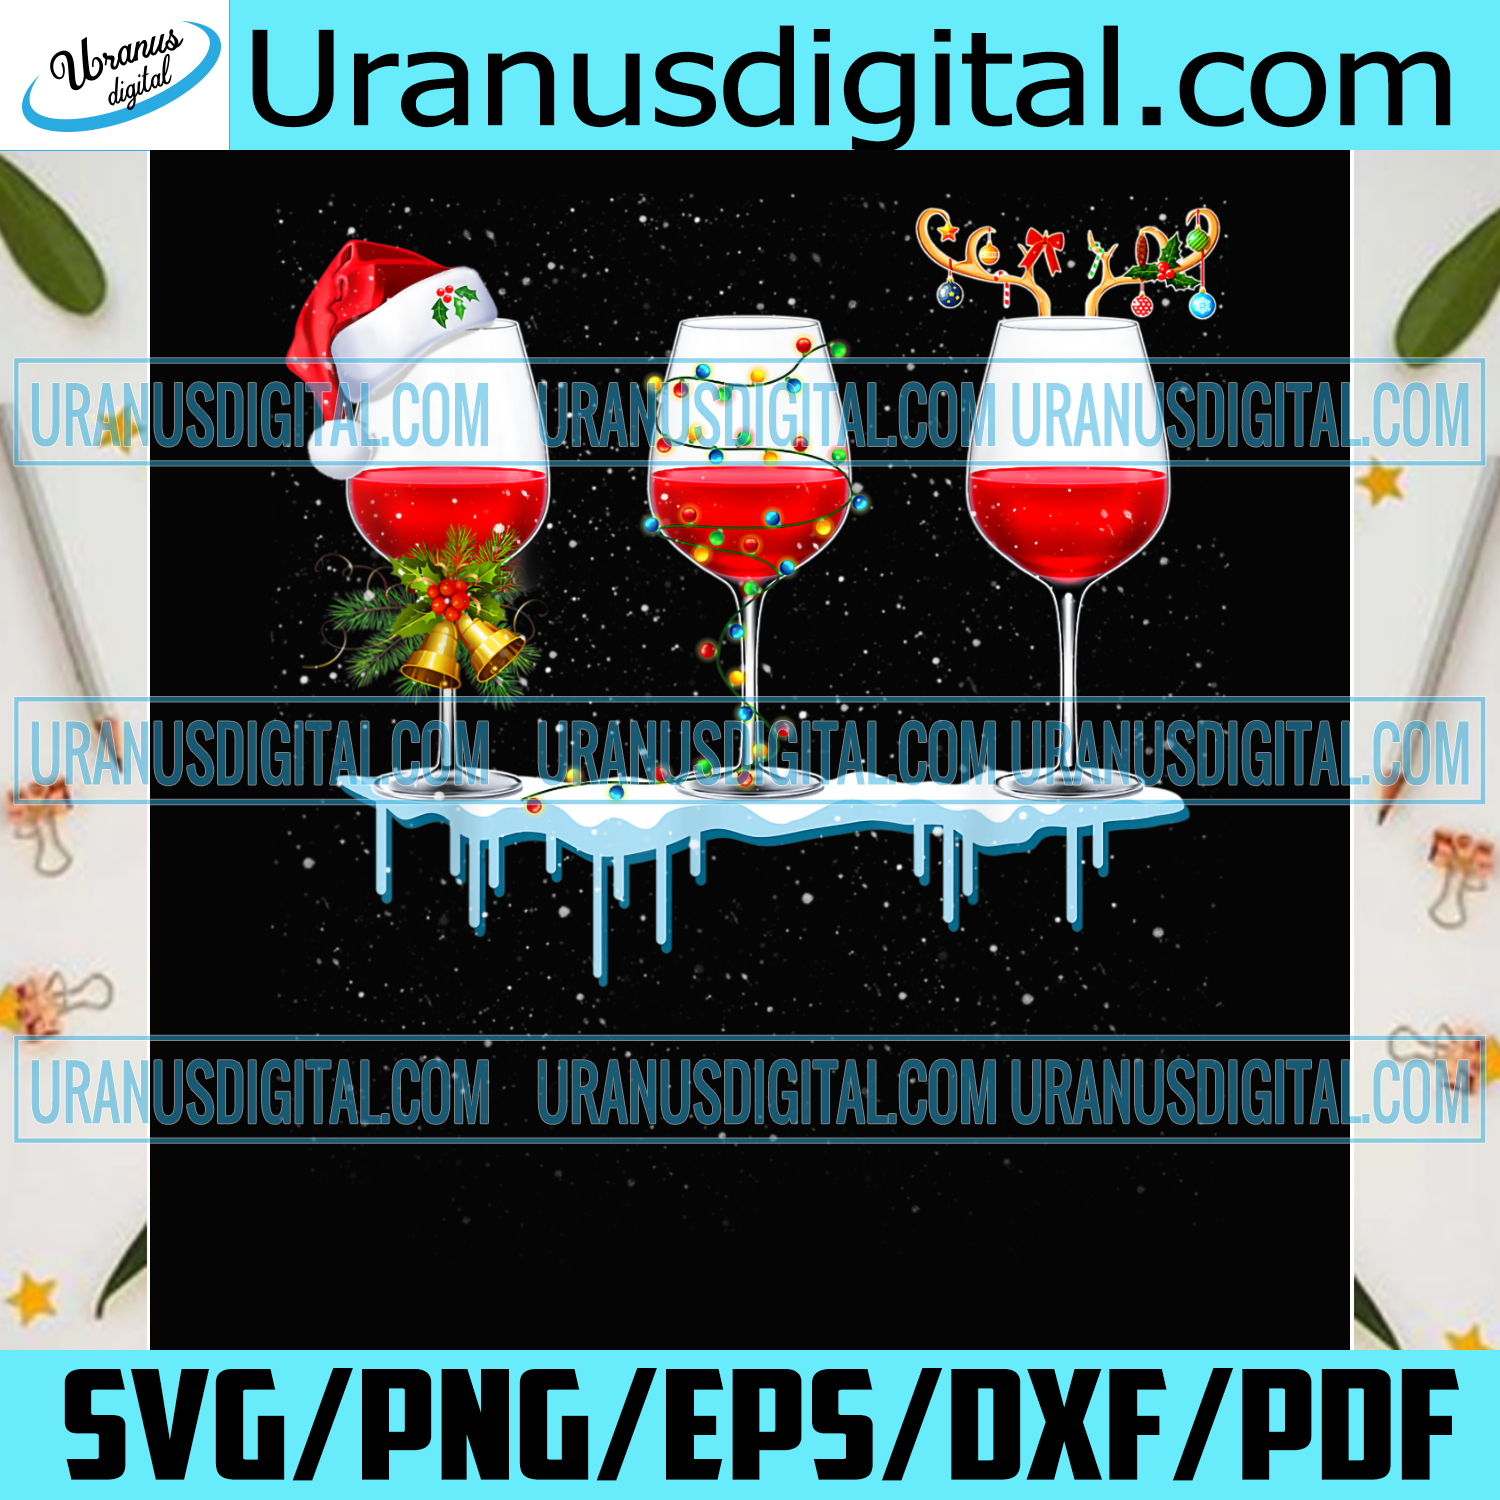 Christmas Wine Png, Christmas Png, Xmas png, Merry Christmas, 2020 Christmas, Wine Glass Png, Christmas Drinks, Drinking Wine, Wine Png, Christmas Party, Reindeer Wine Glass, Christmas Gift